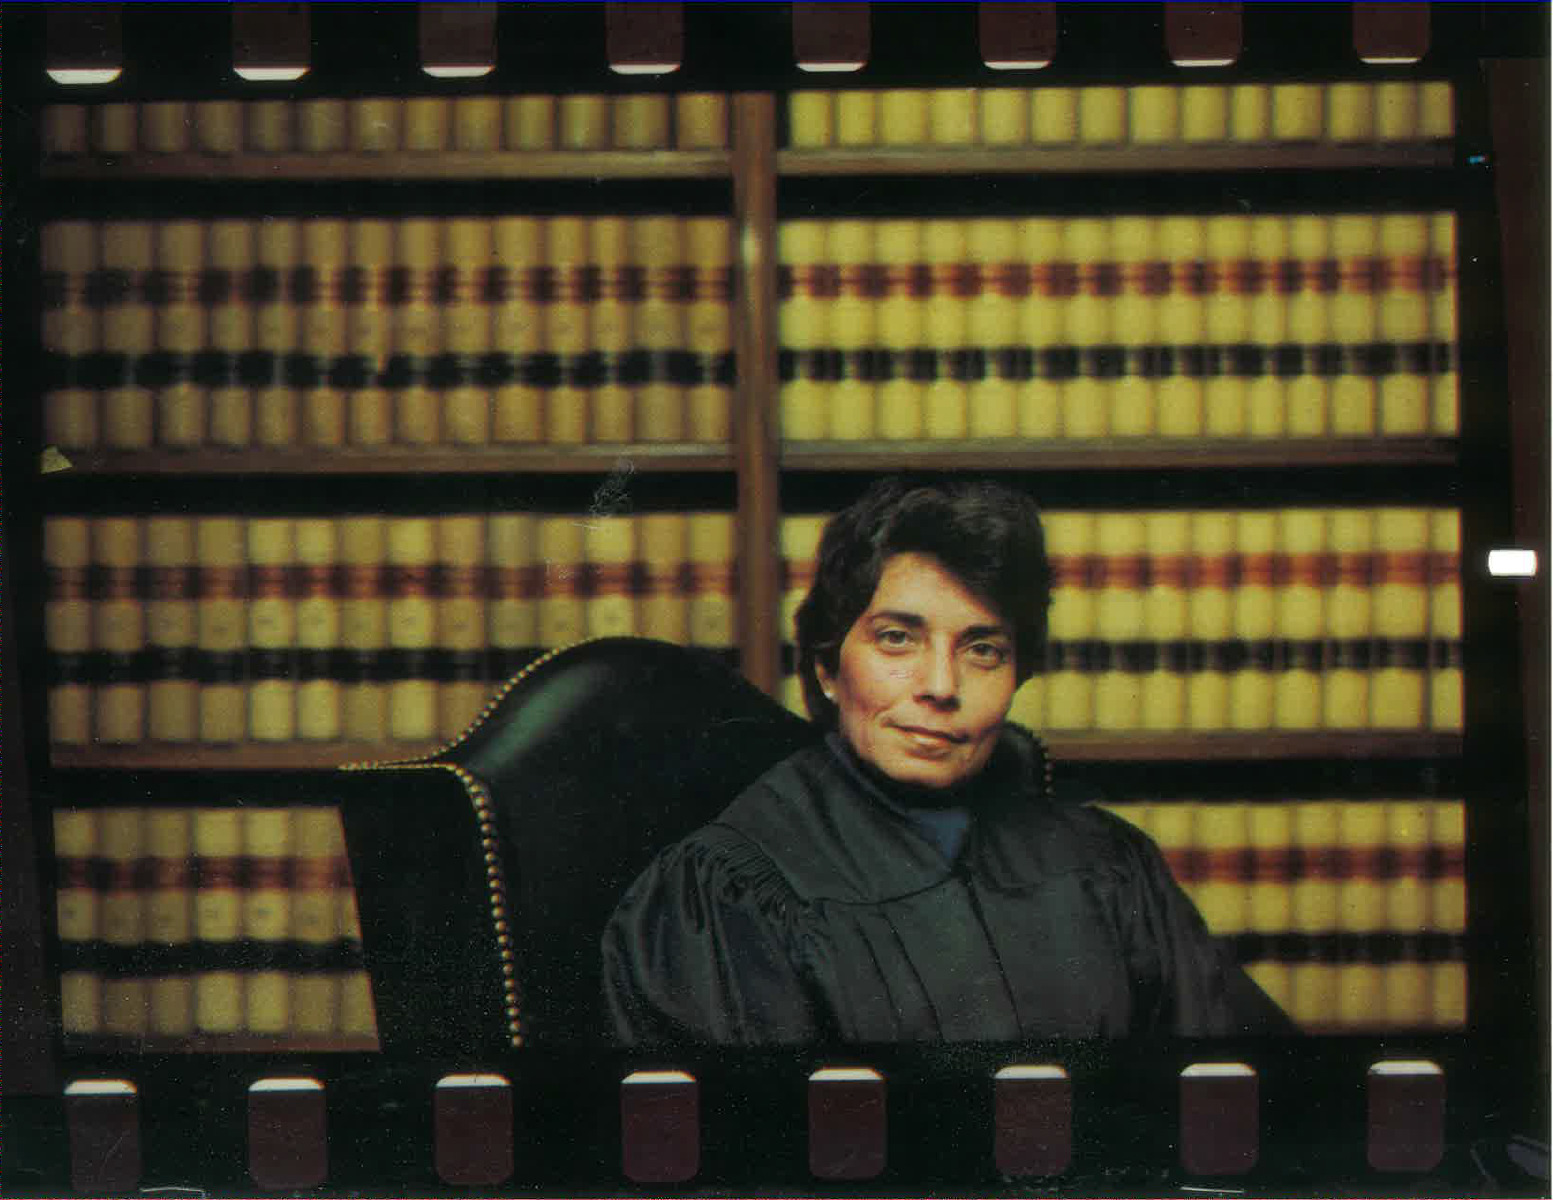 Justice Rothstein in her chambers.